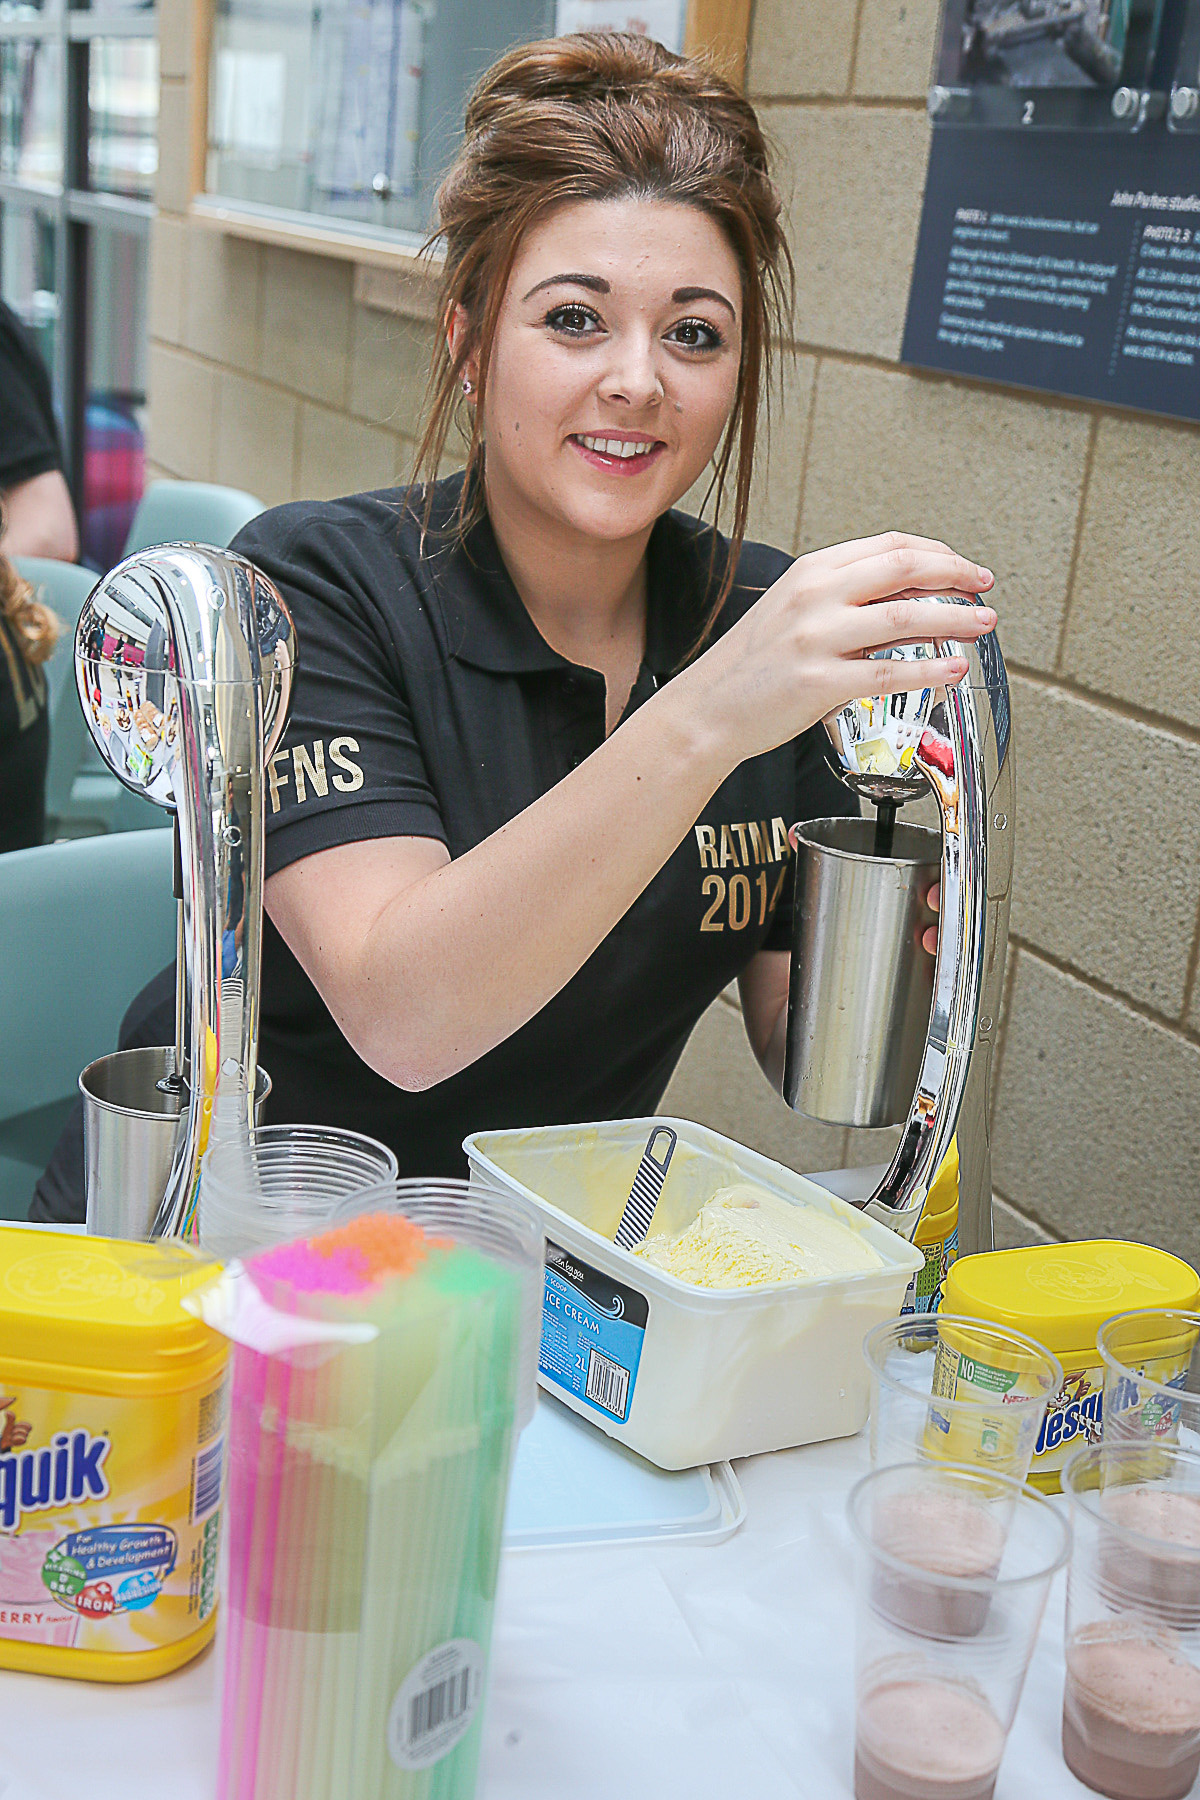 Travel and tourism student Olivia Sutcliffe preparing the ice creams